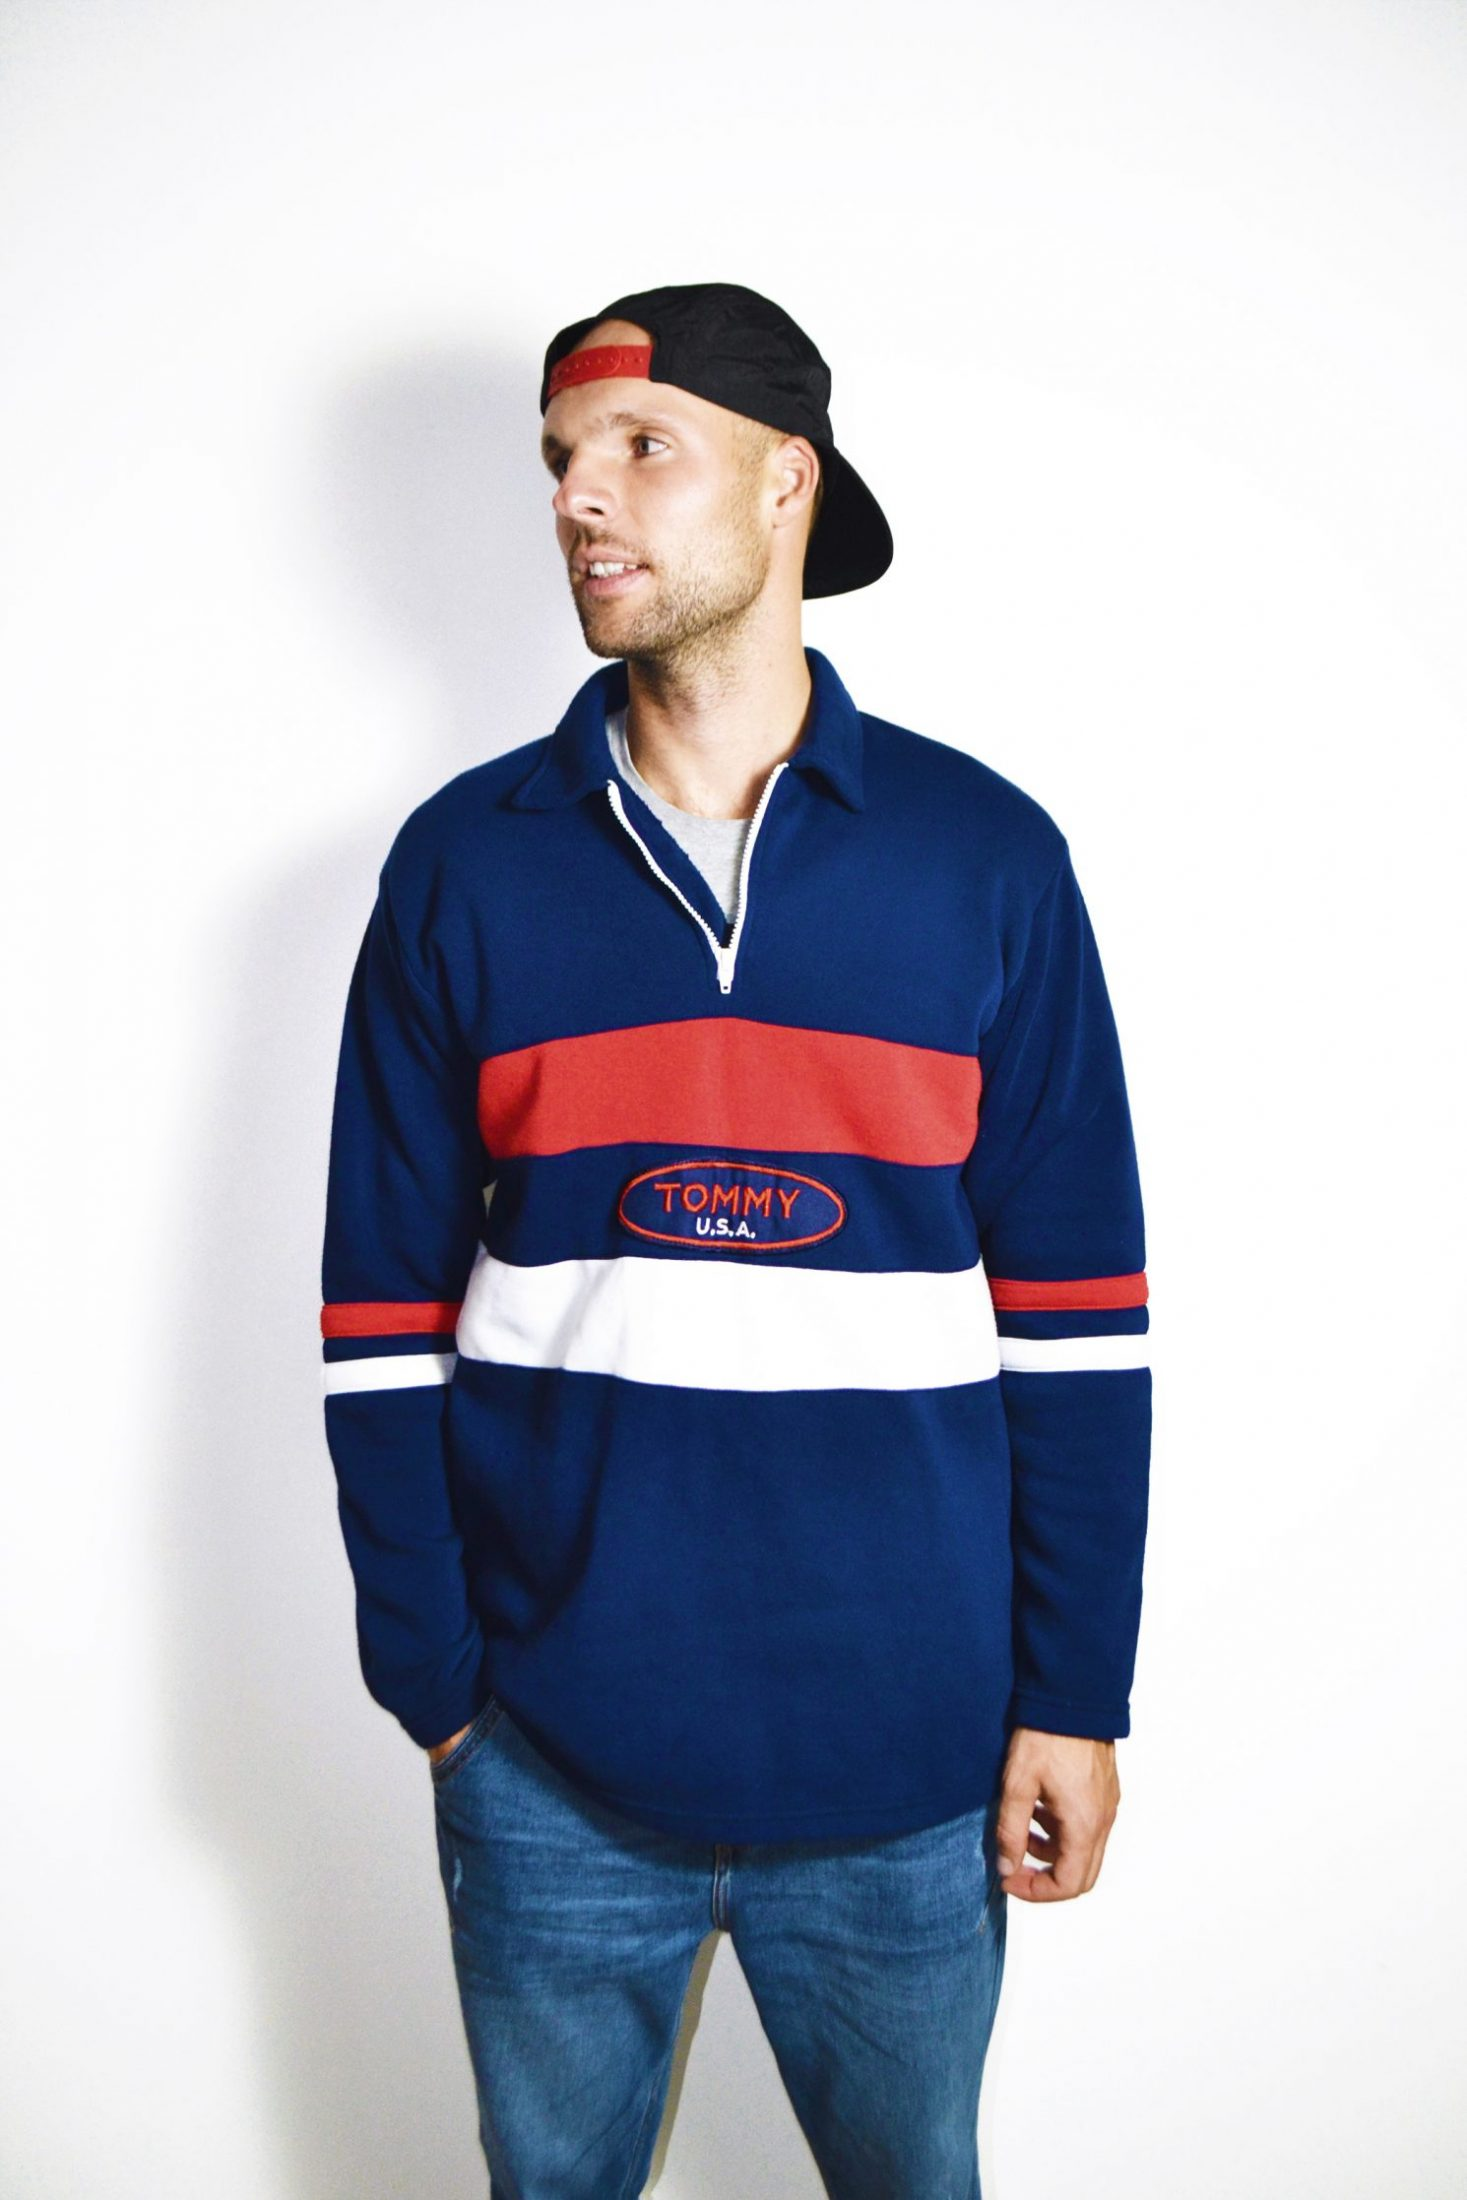 80093e37e39 TOMMY HILFIGER vintage rugby shirt | The best vintage clothing | Europe